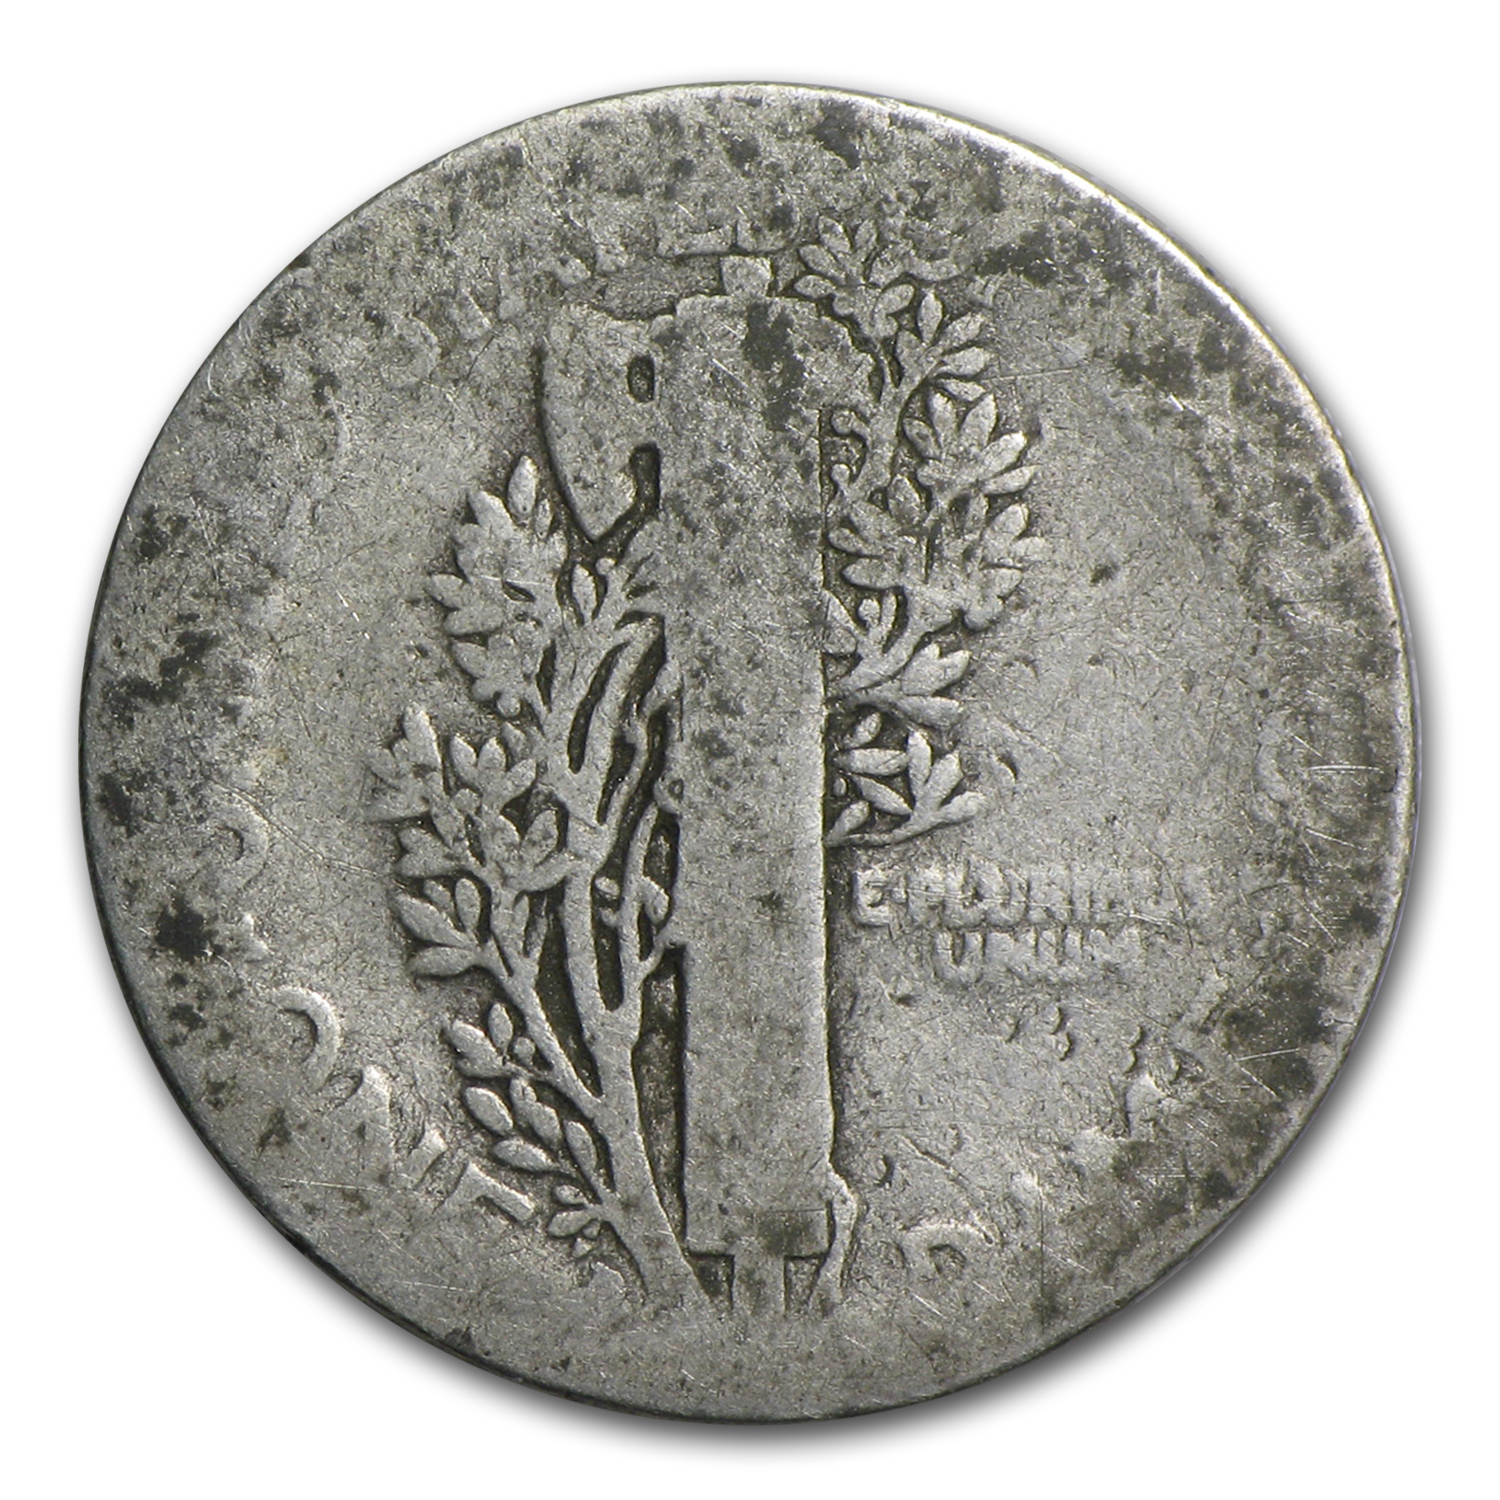 1916-D Mercury Dime - Almost Good